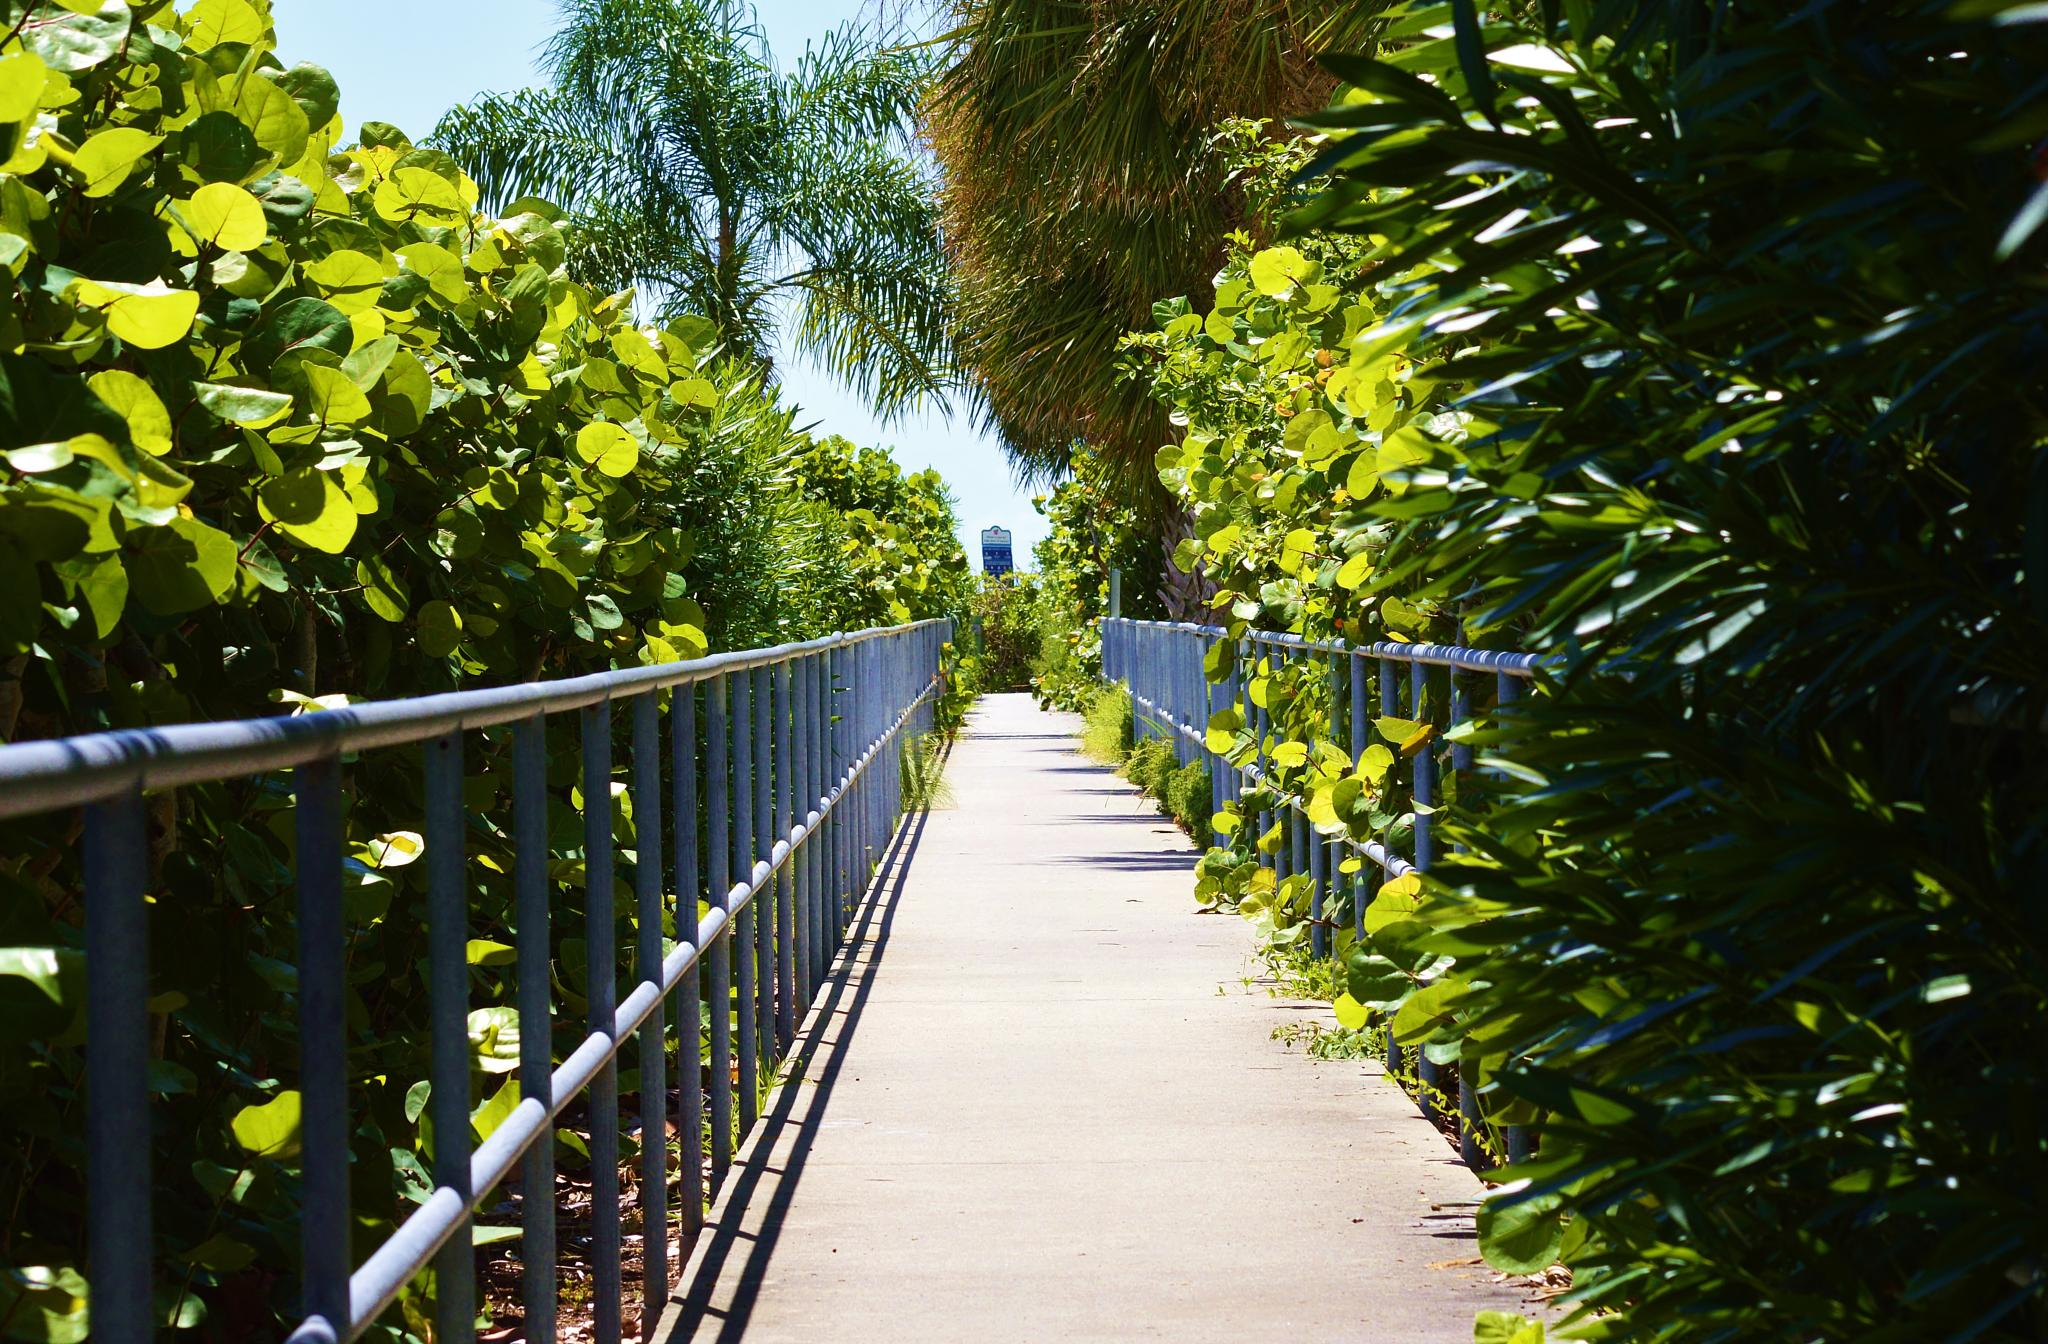 Acces Path to the Beach by jamie.dorton